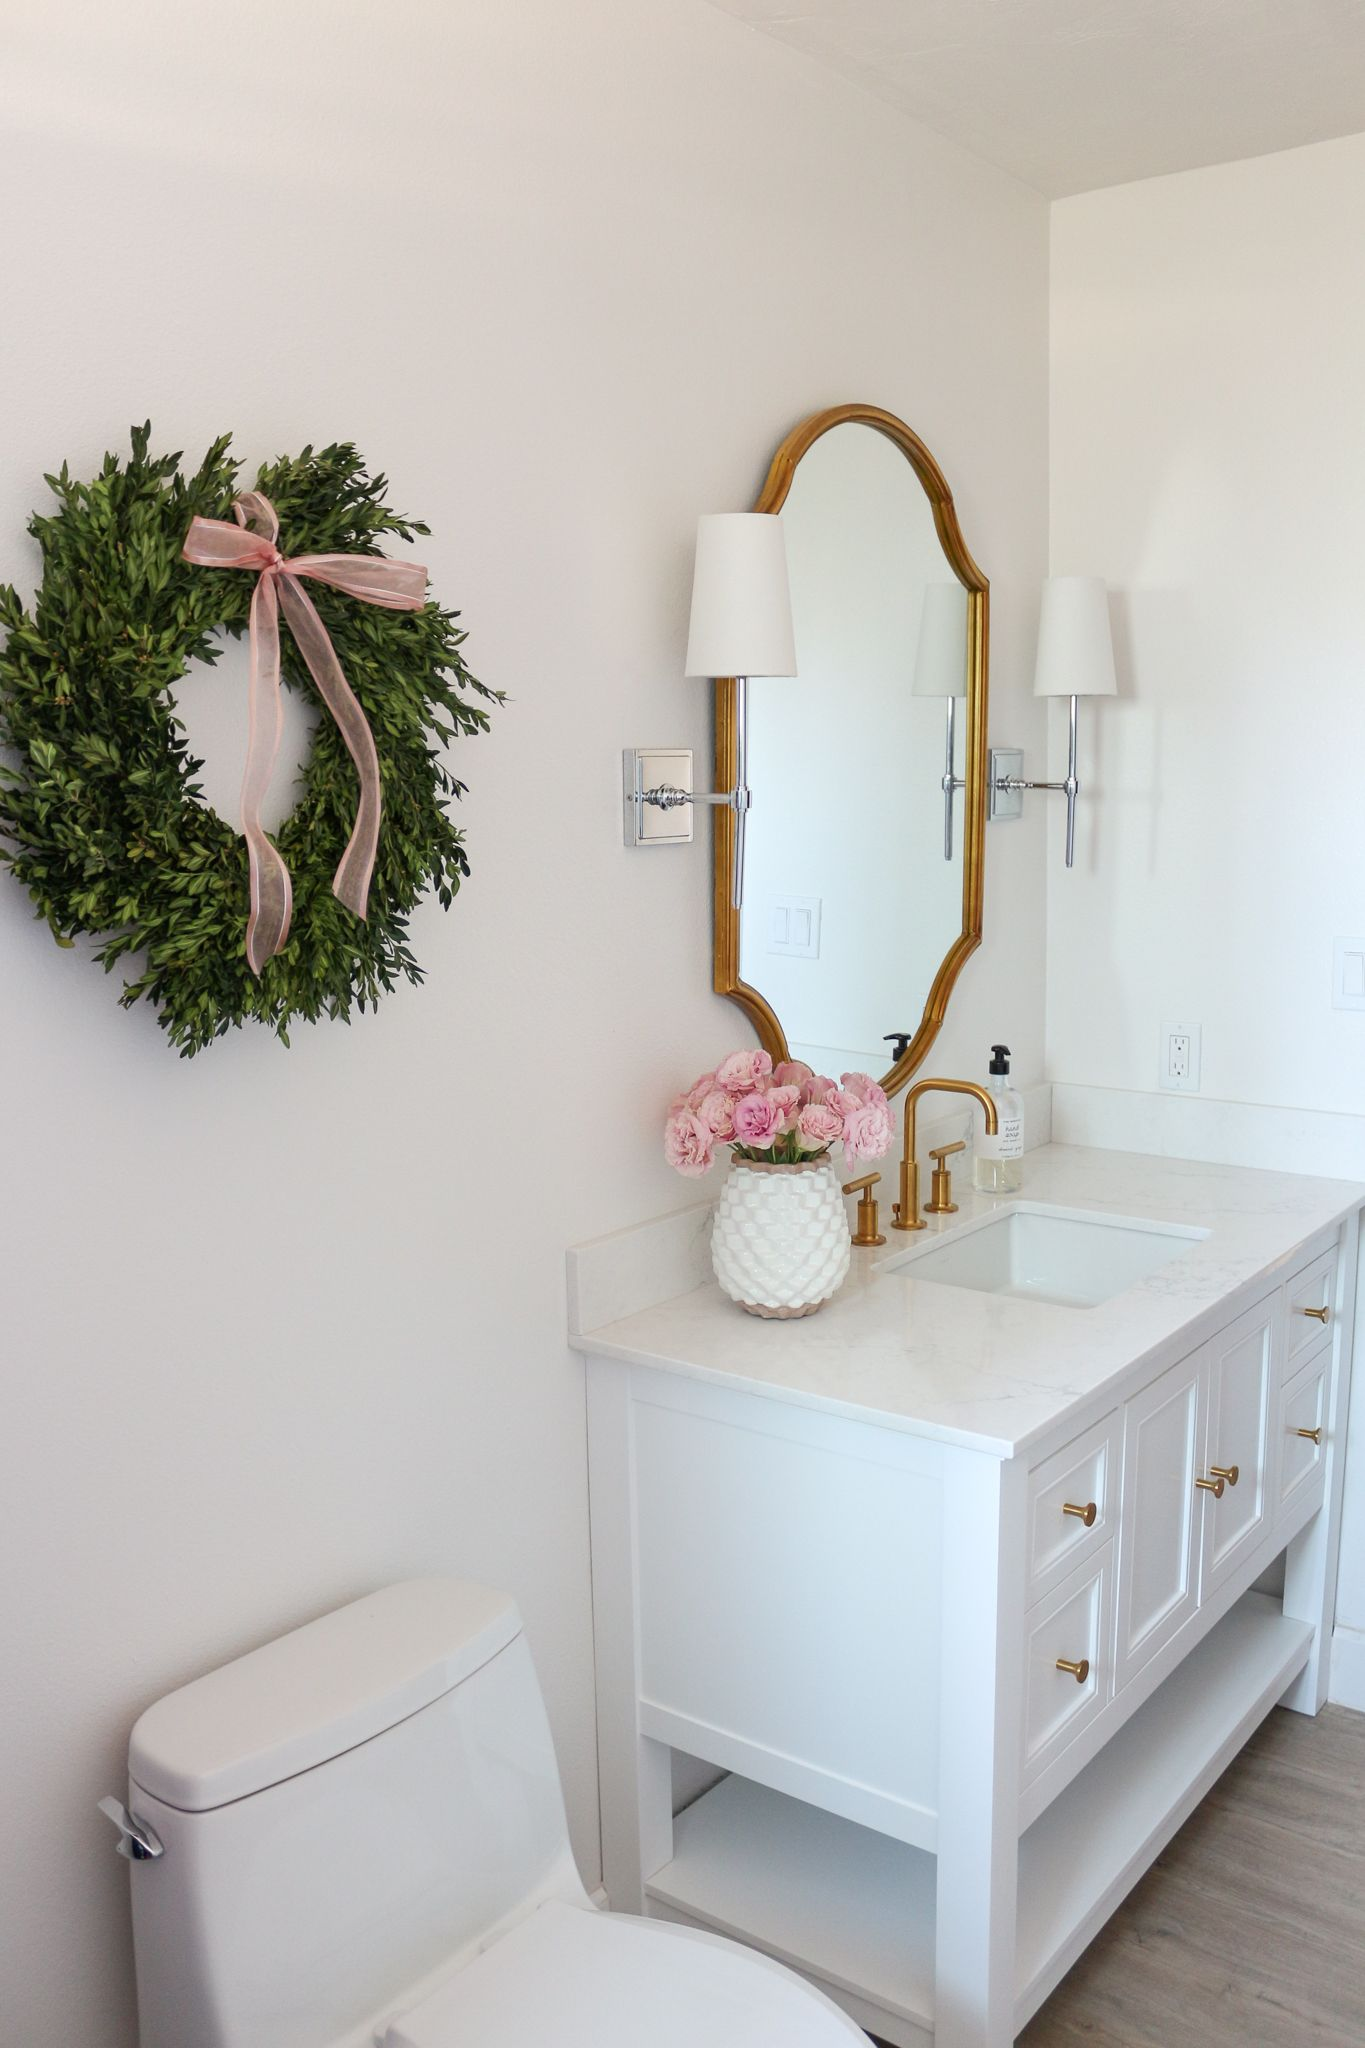 Bright White Chic Bathroom Renovation | Our New Home | Pinterest ...